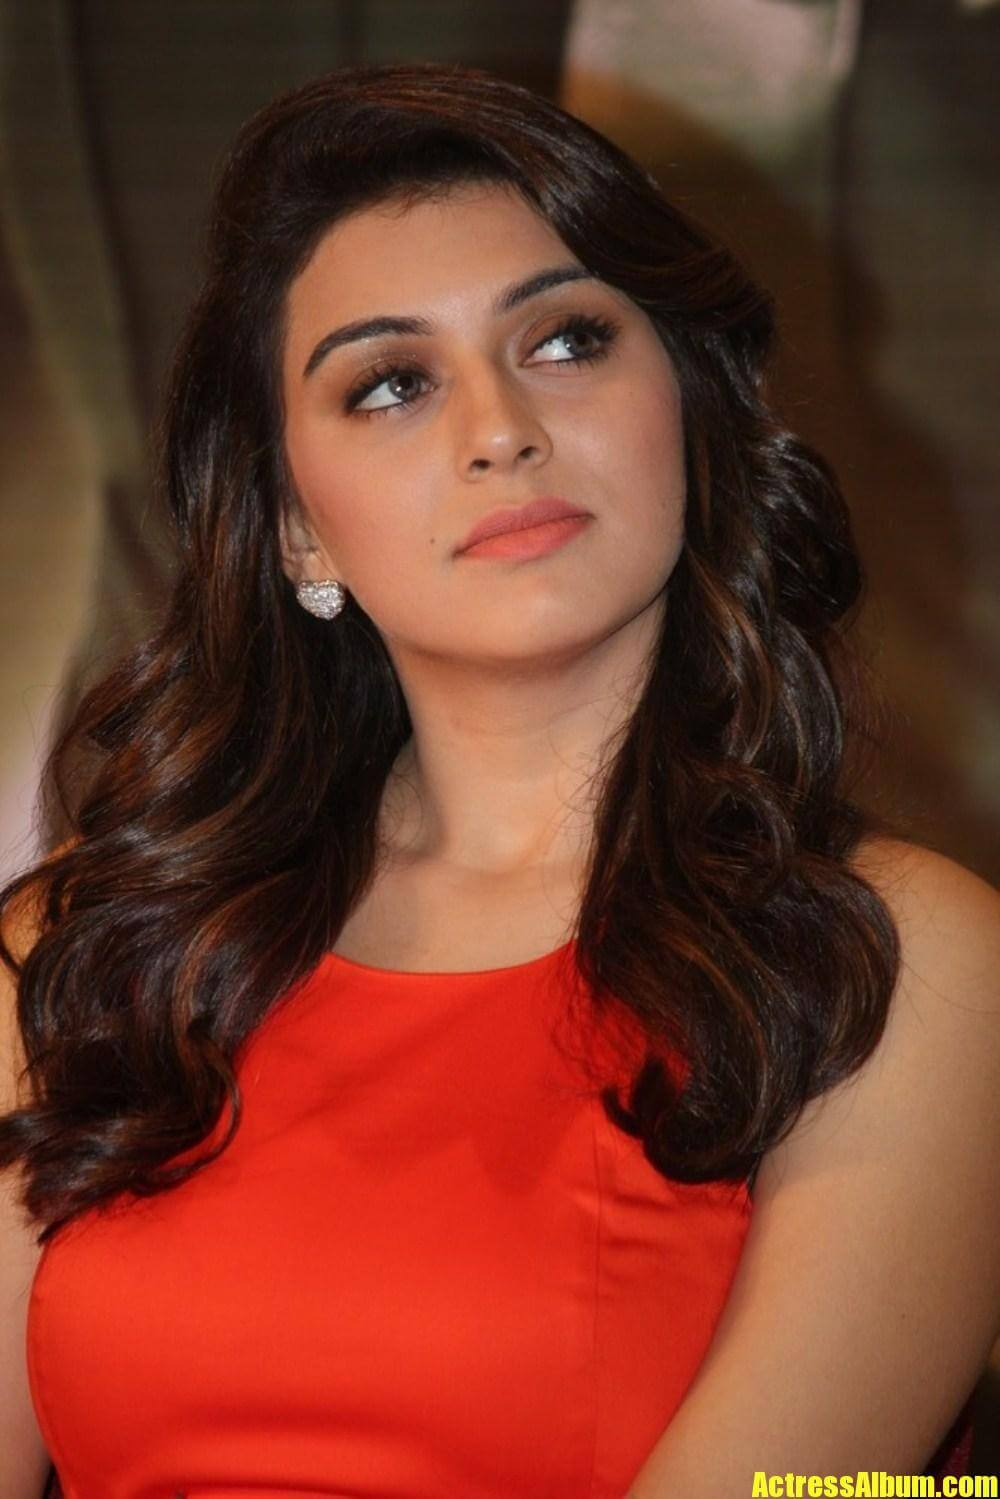 Cute Indian Baby Wallpapers Hd Hansika Hot Photos In Red Dress Actress Album